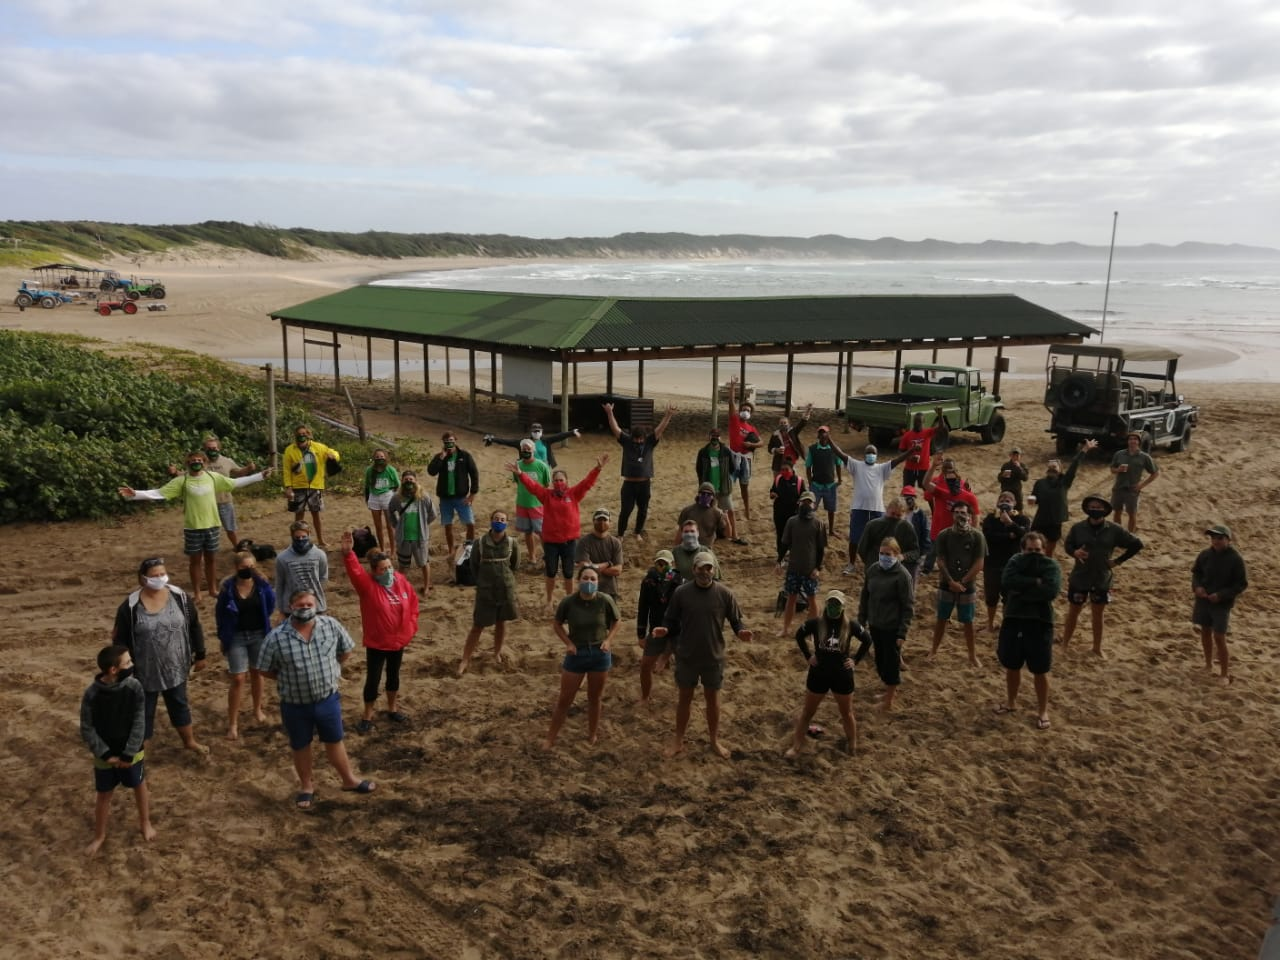 Triton helps clean the beach ready for divers